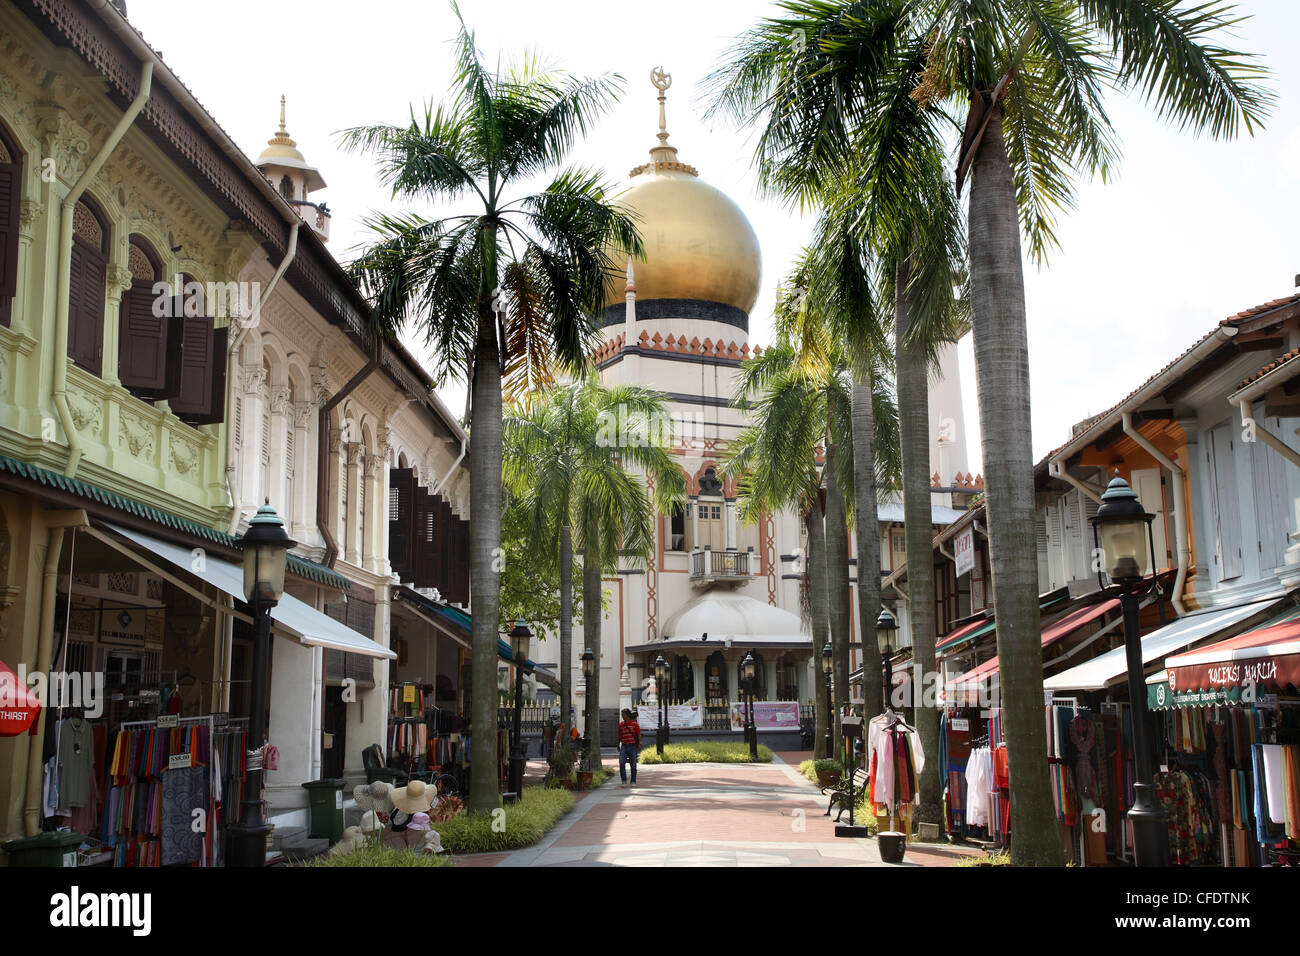 The Sultan Mosque built in 1826, Kampong Glam, Singapore, Southeast Asia, Asia - Stock Image